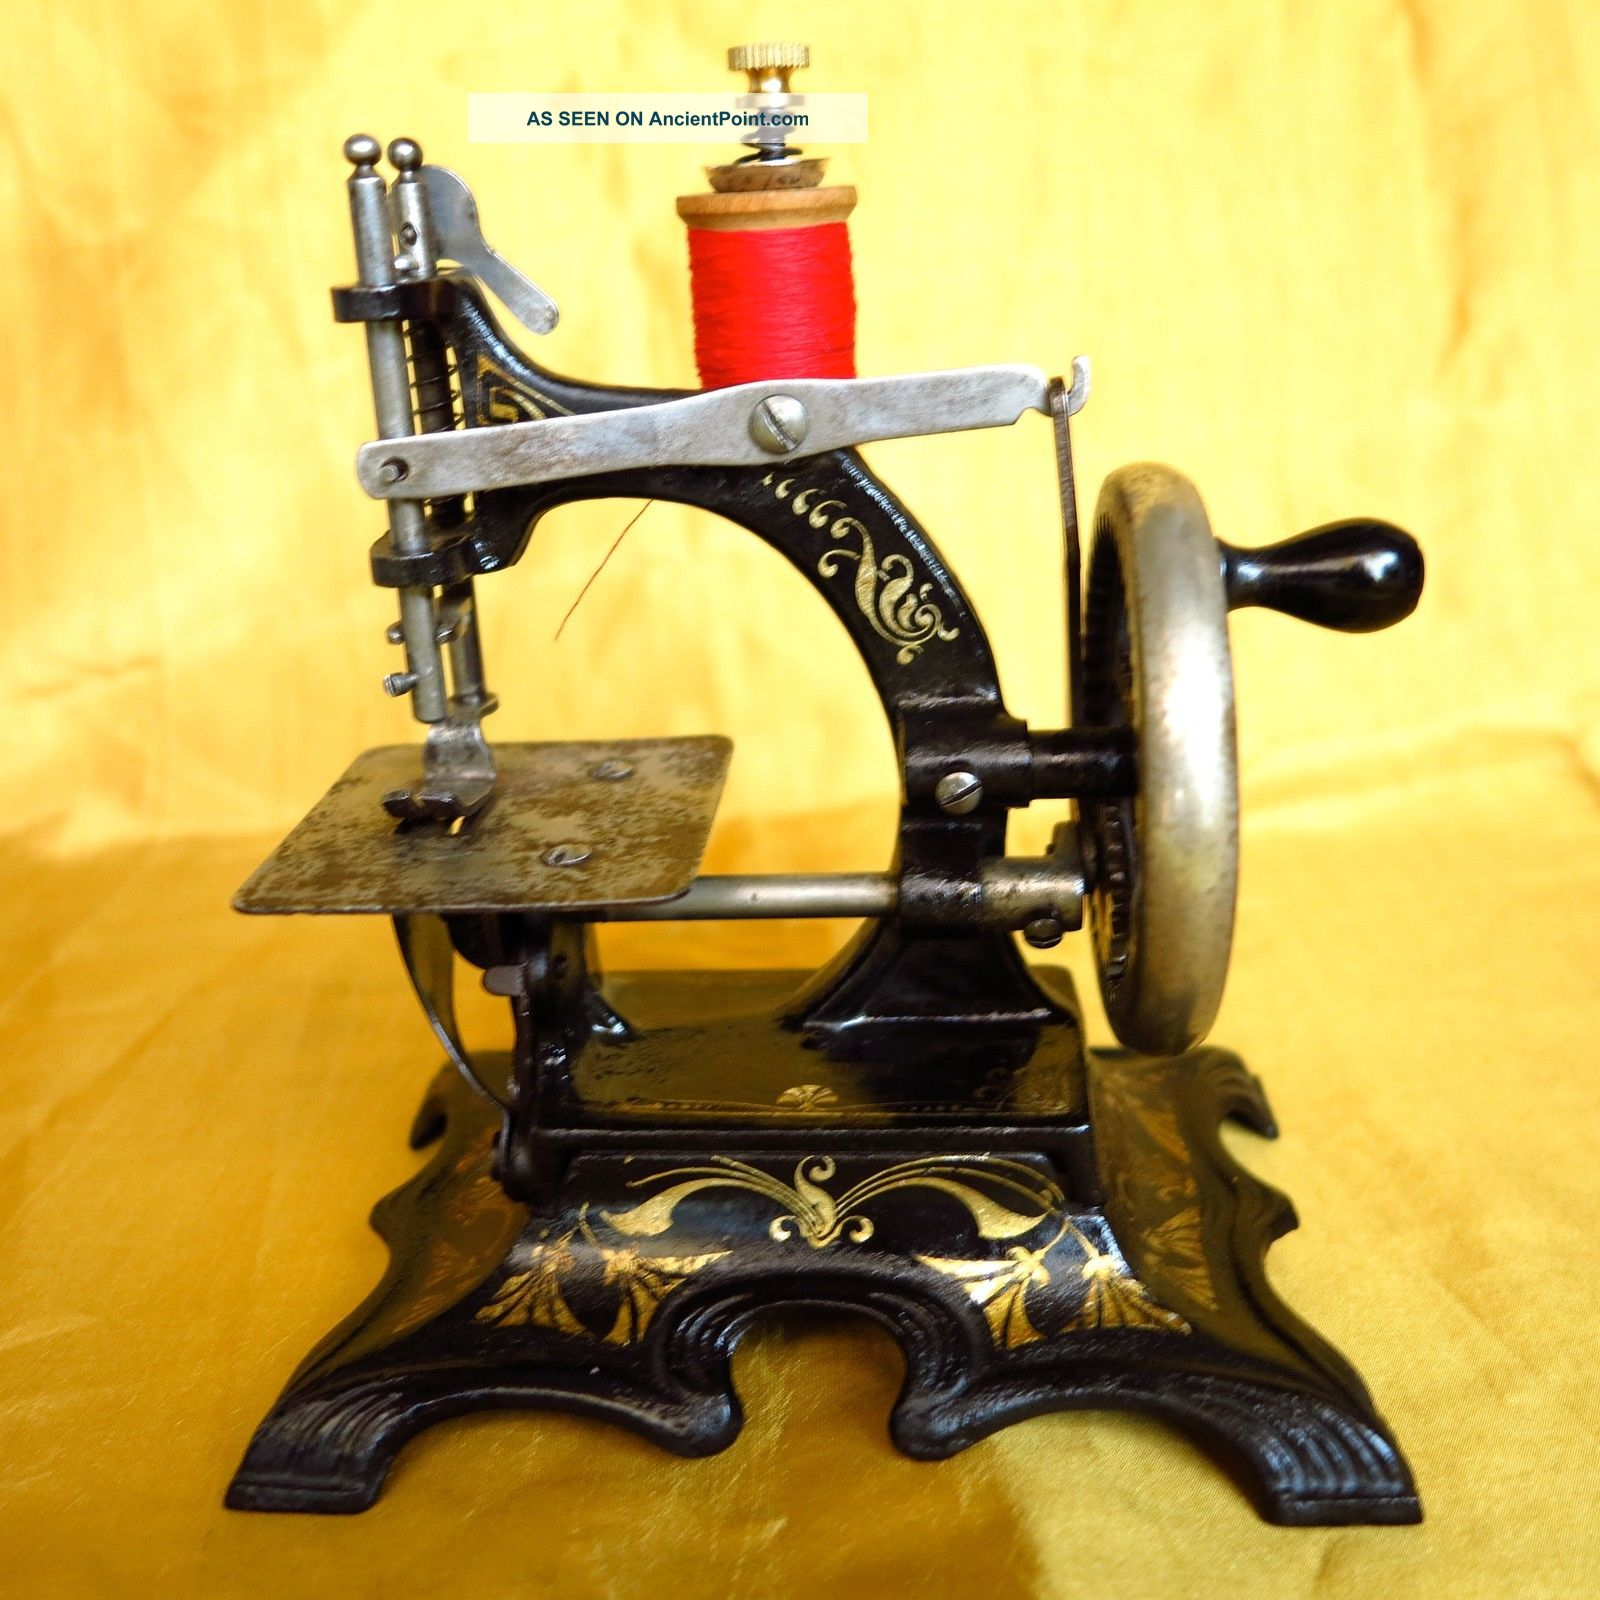 Antique Victorian Cast Iron Small Toy Sewing Machine With Golden Decorations. Sewing Machines photo